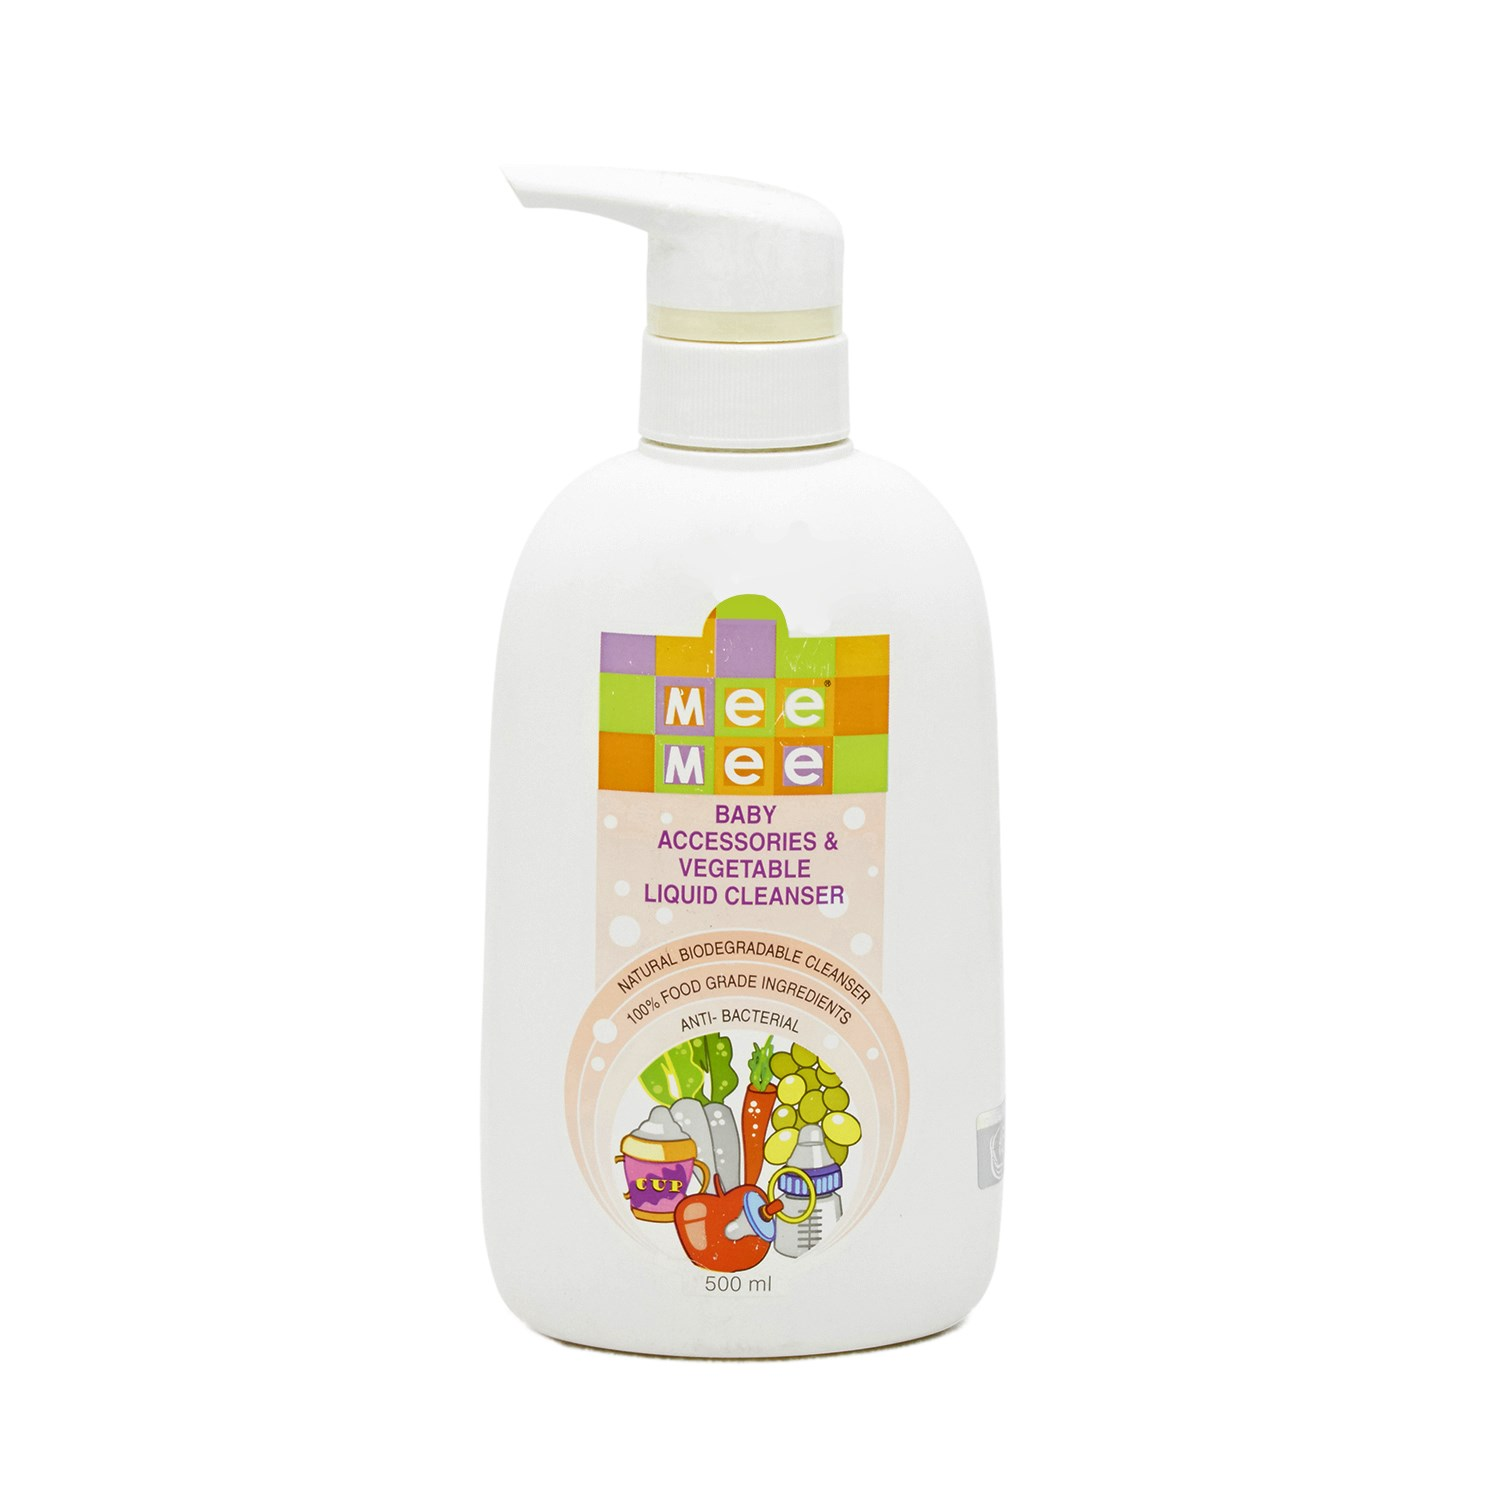 Mee Mee 3775 Accessory & Vegetable Liquid Cleanser - 500 ml